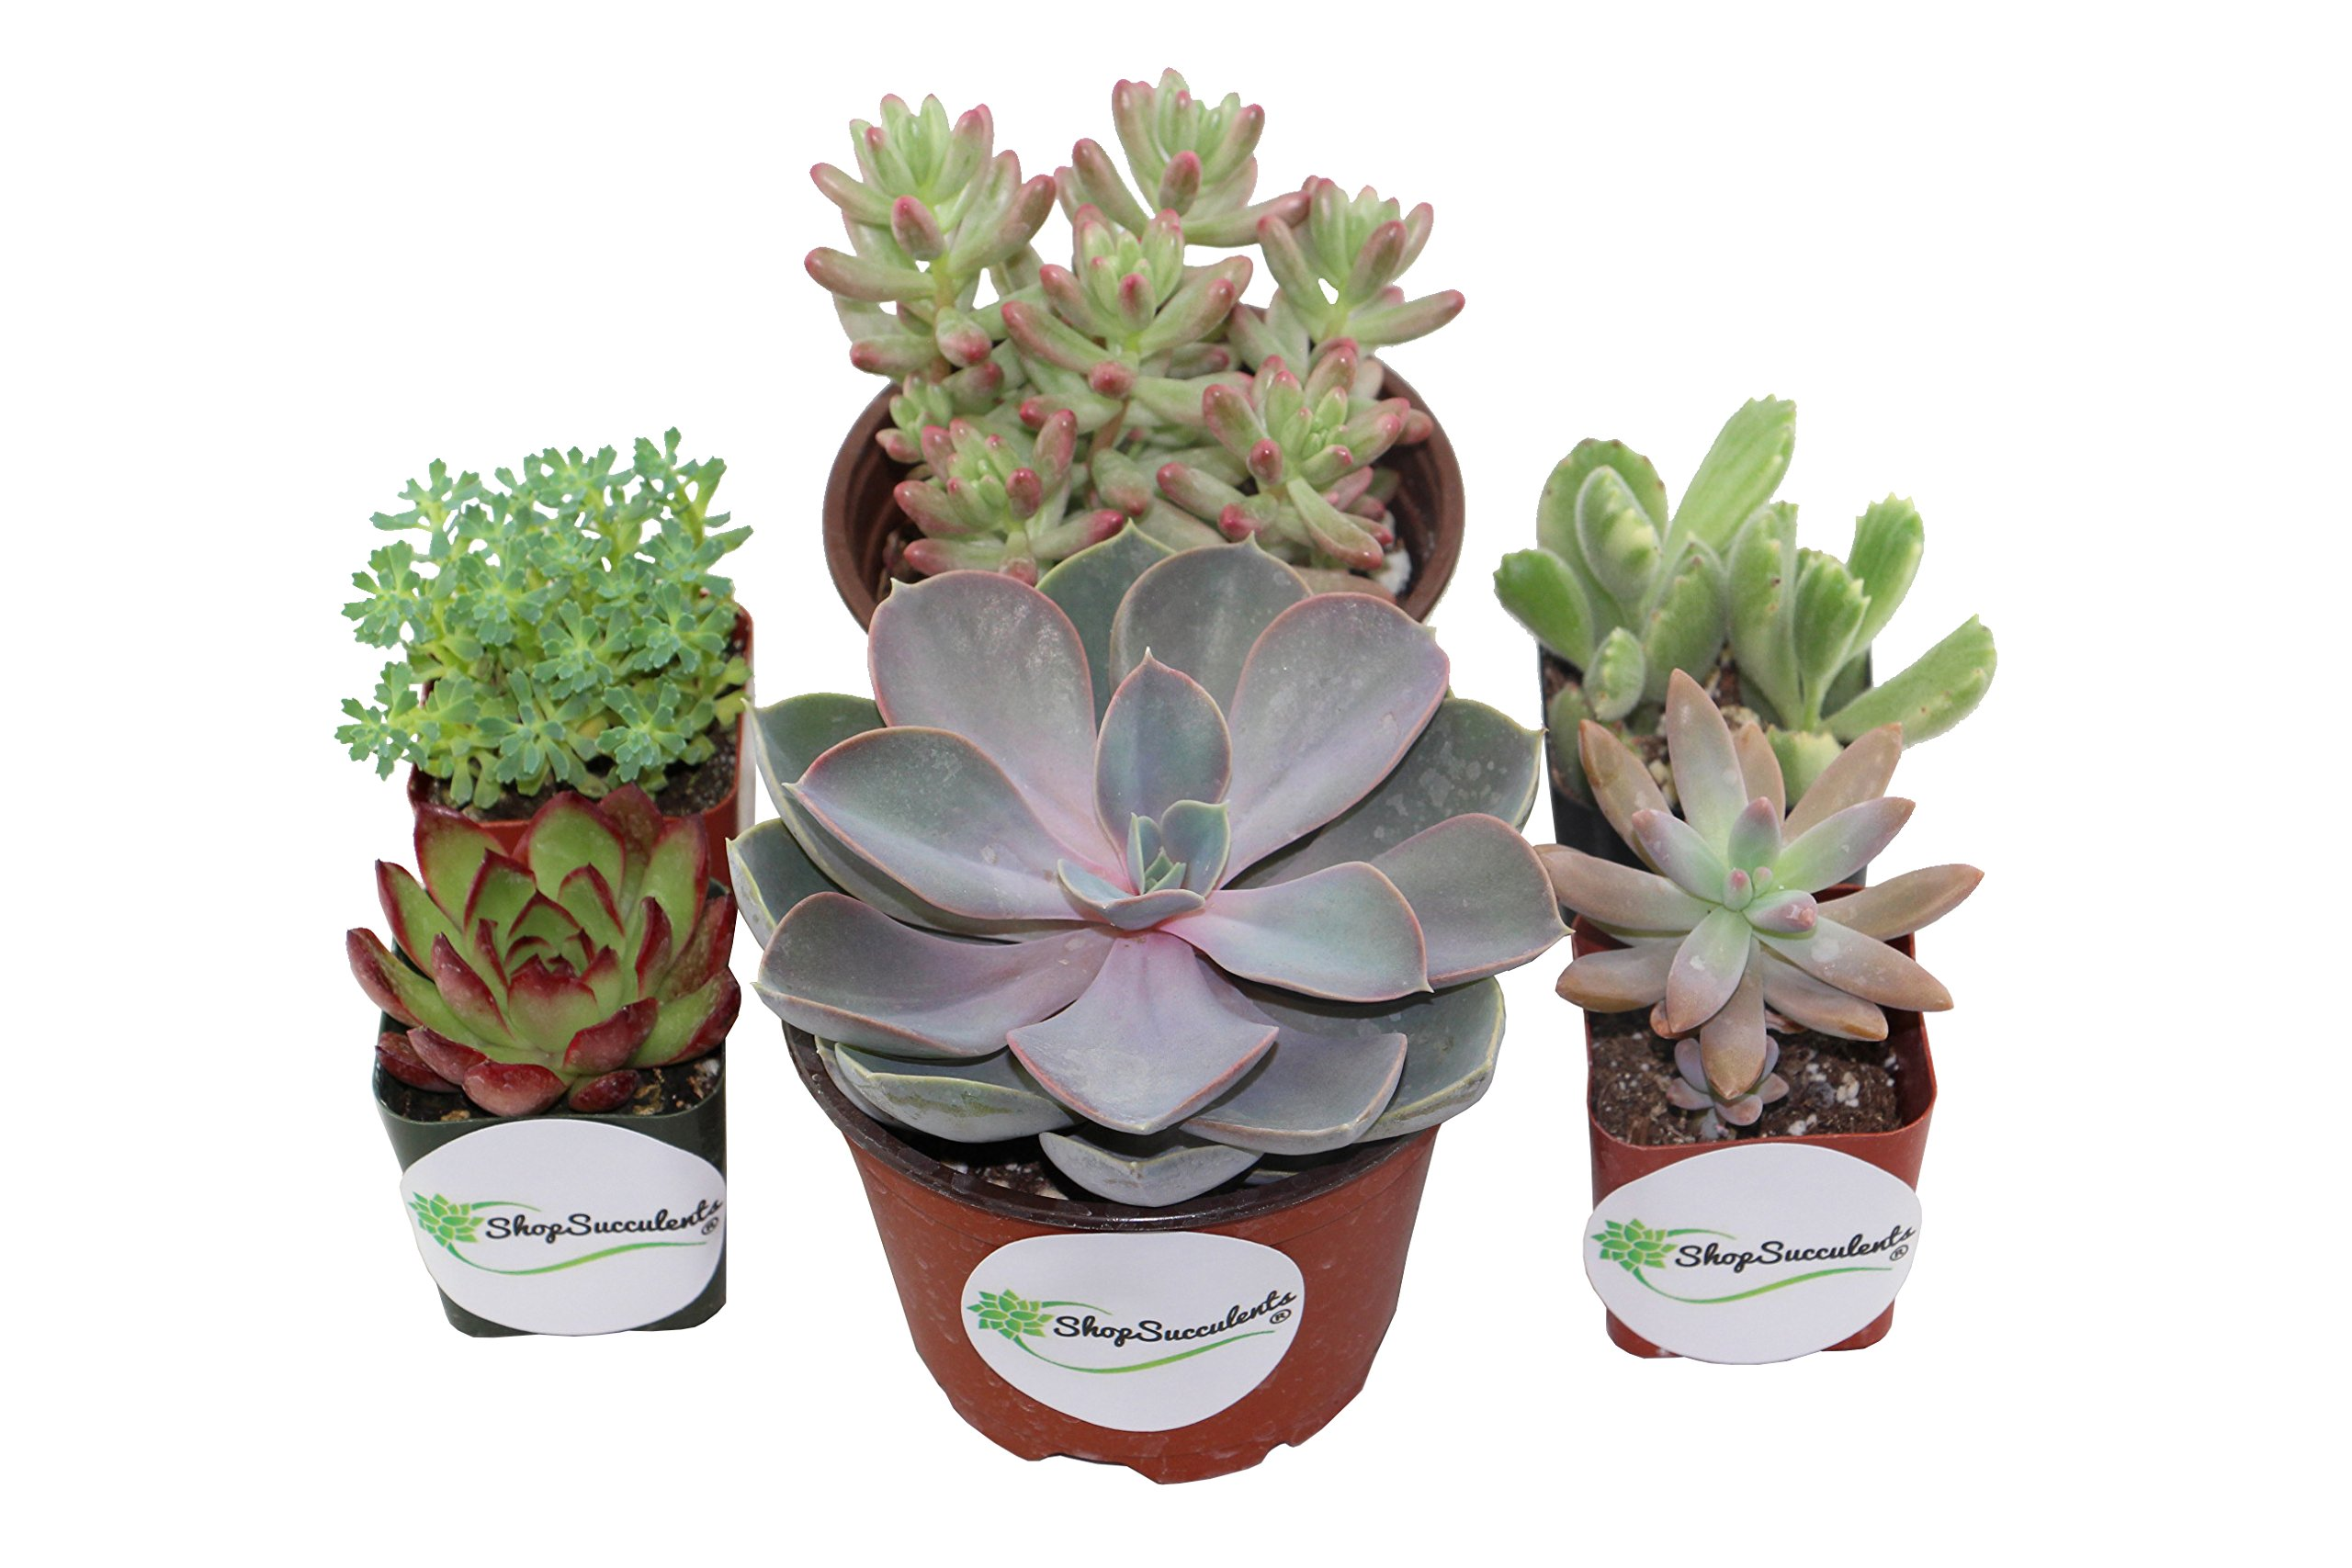 Shop Succulents   Assorted Live Plants, Hand Selected Variety Pack of Mini Succulents     Collection of 6 in 2'' & 4'' pots)